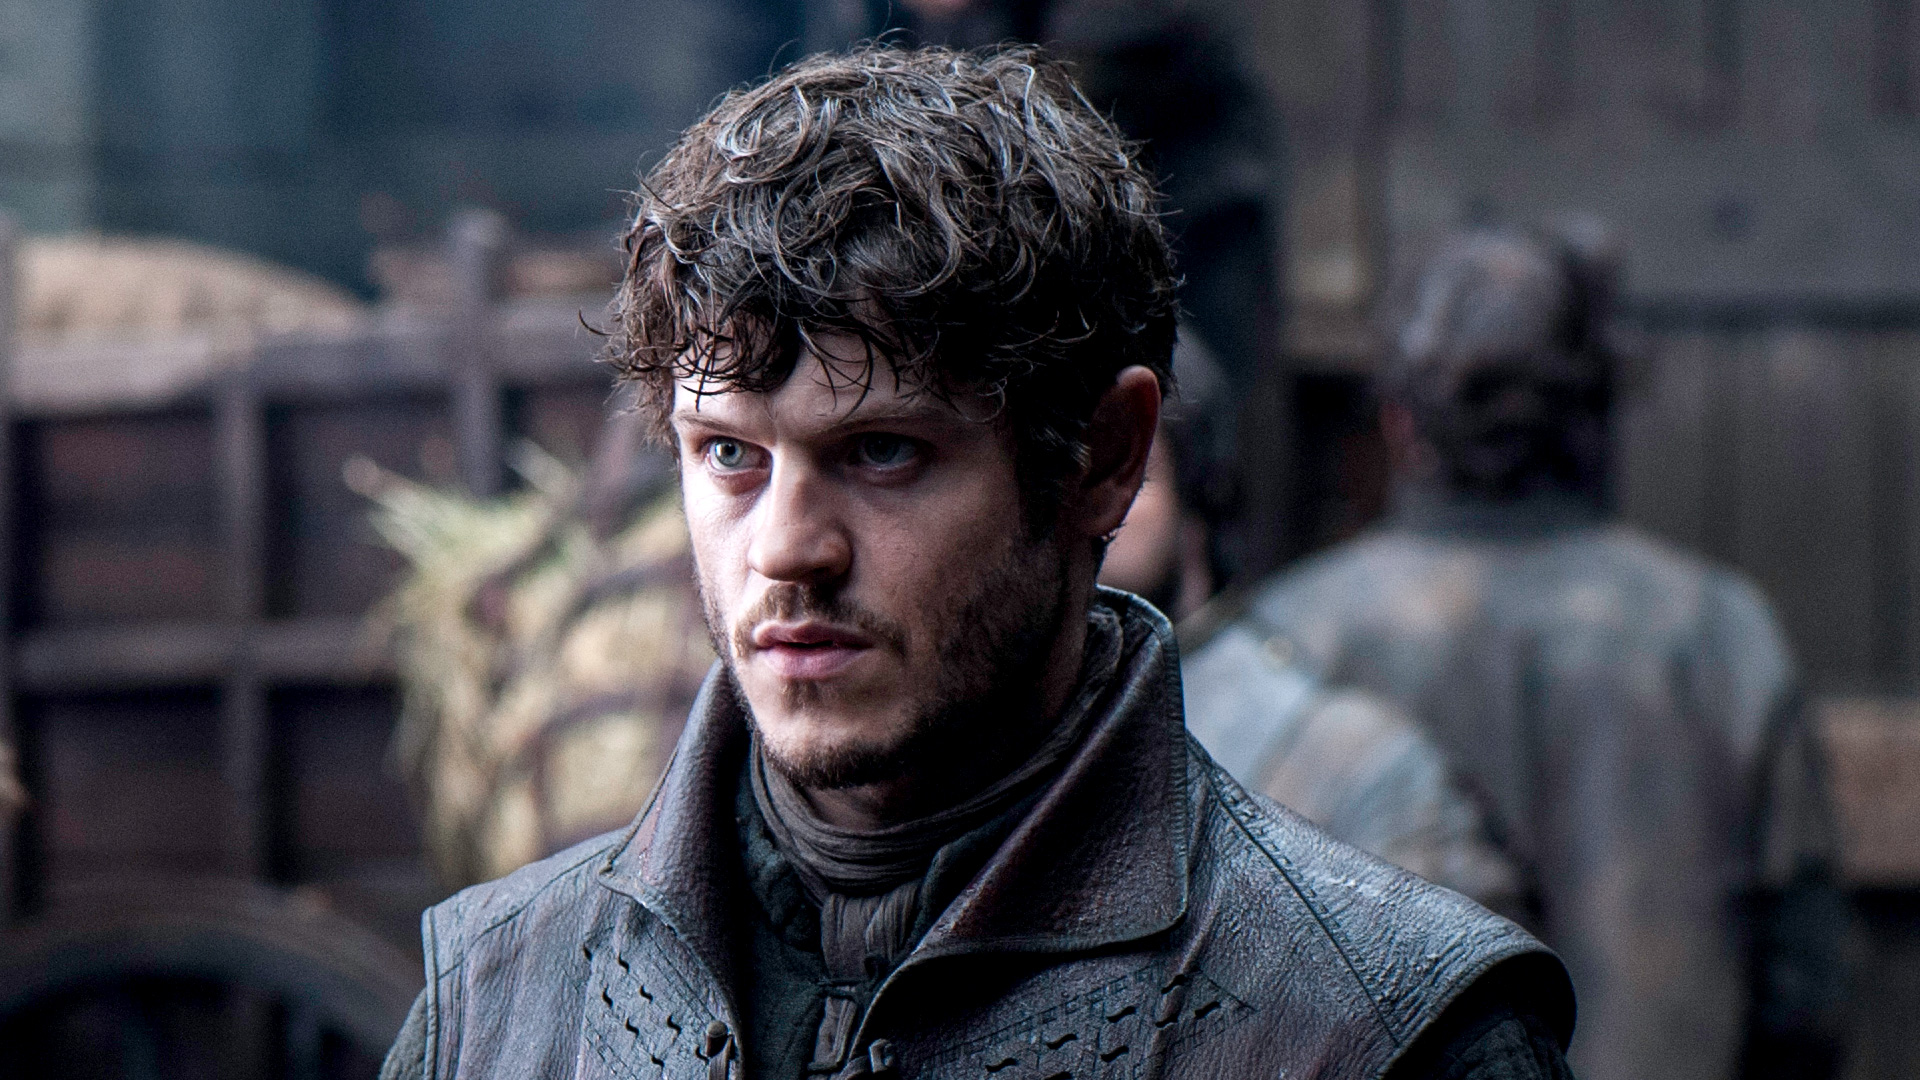 hottest game of thrones men ramsay